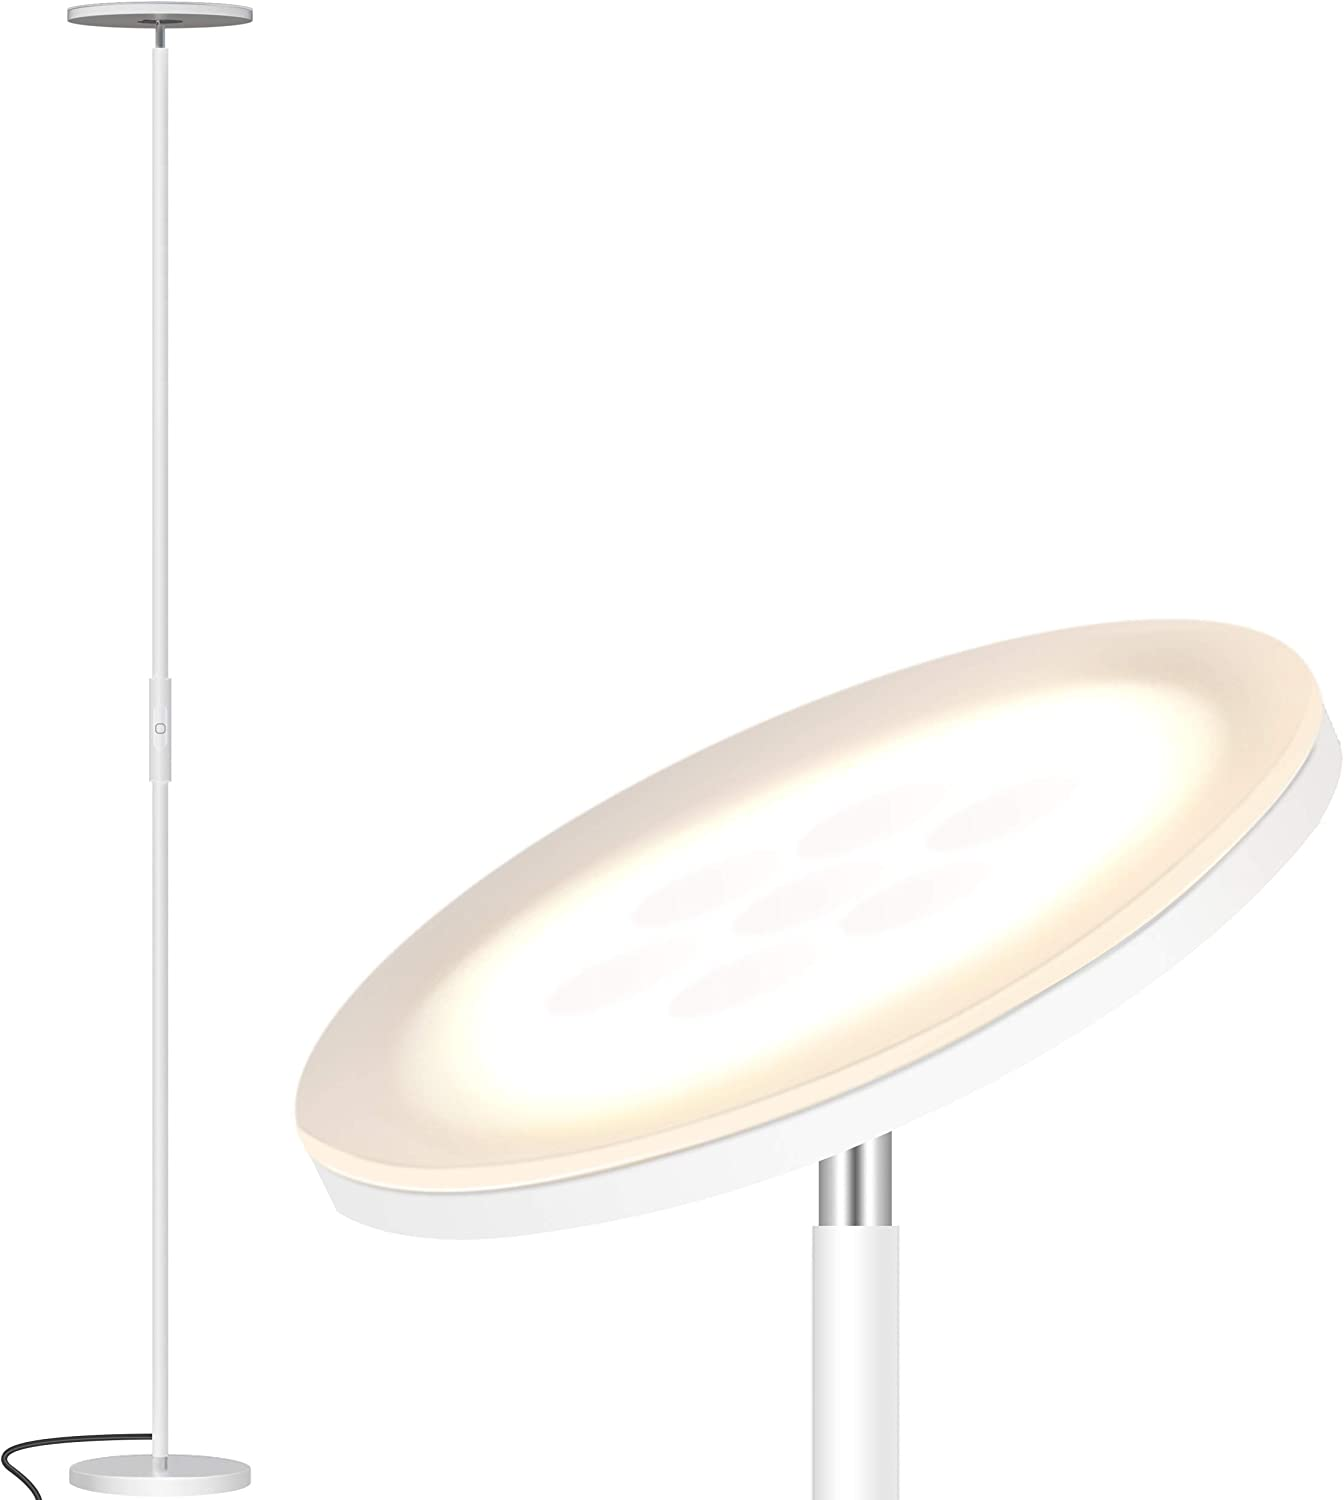 Addlon LED Torchiere Floor Lamp - Tall Standing Modern Lamp Pole Light for Living & Office – Stepless Dimmable Uplight with Wall Switch - White